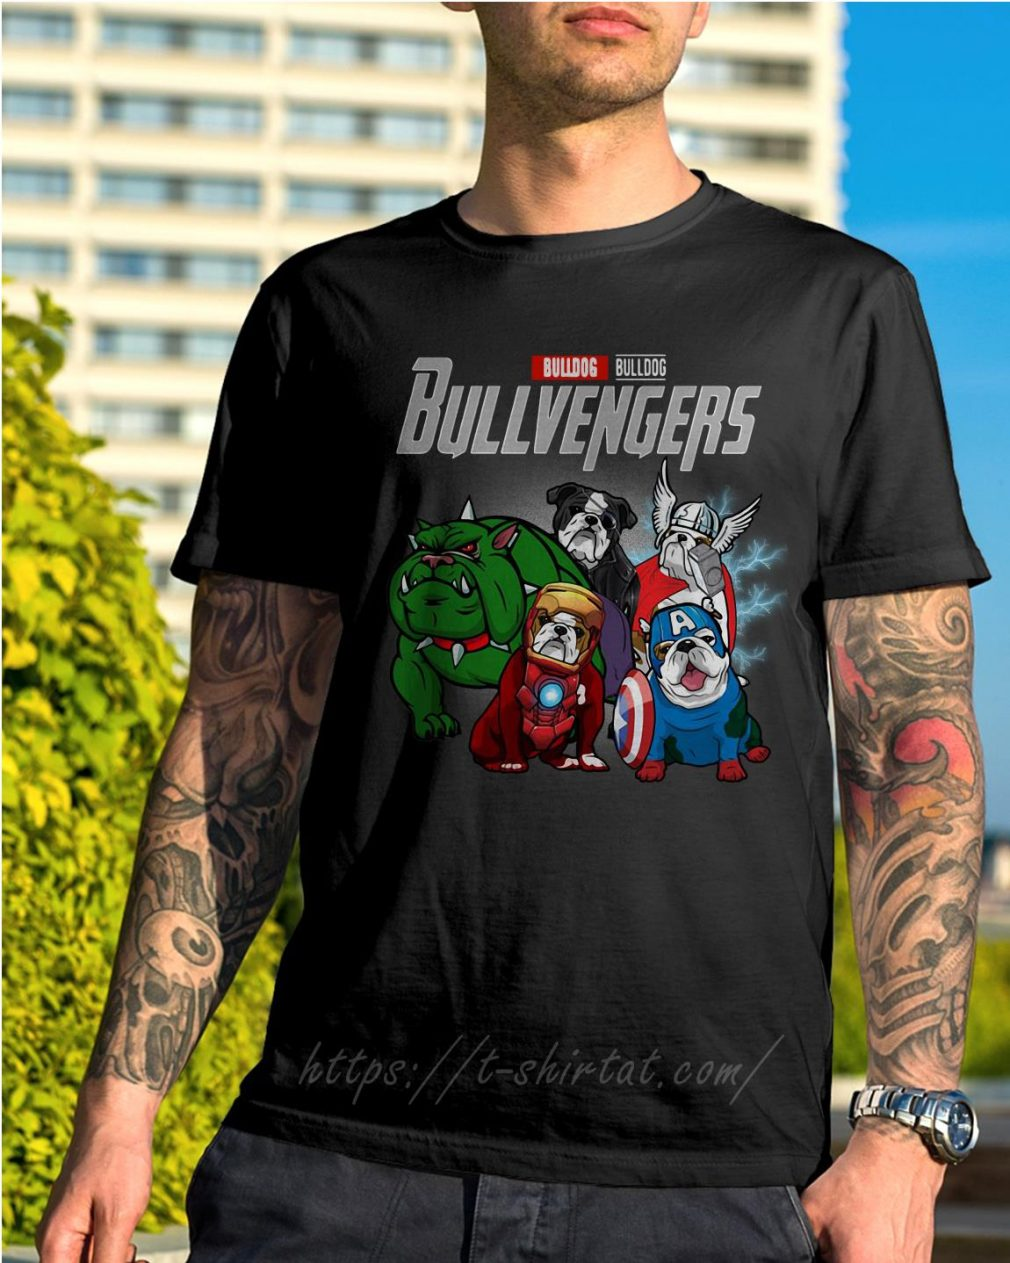 Marvel Bulldog Bullvengers shirt